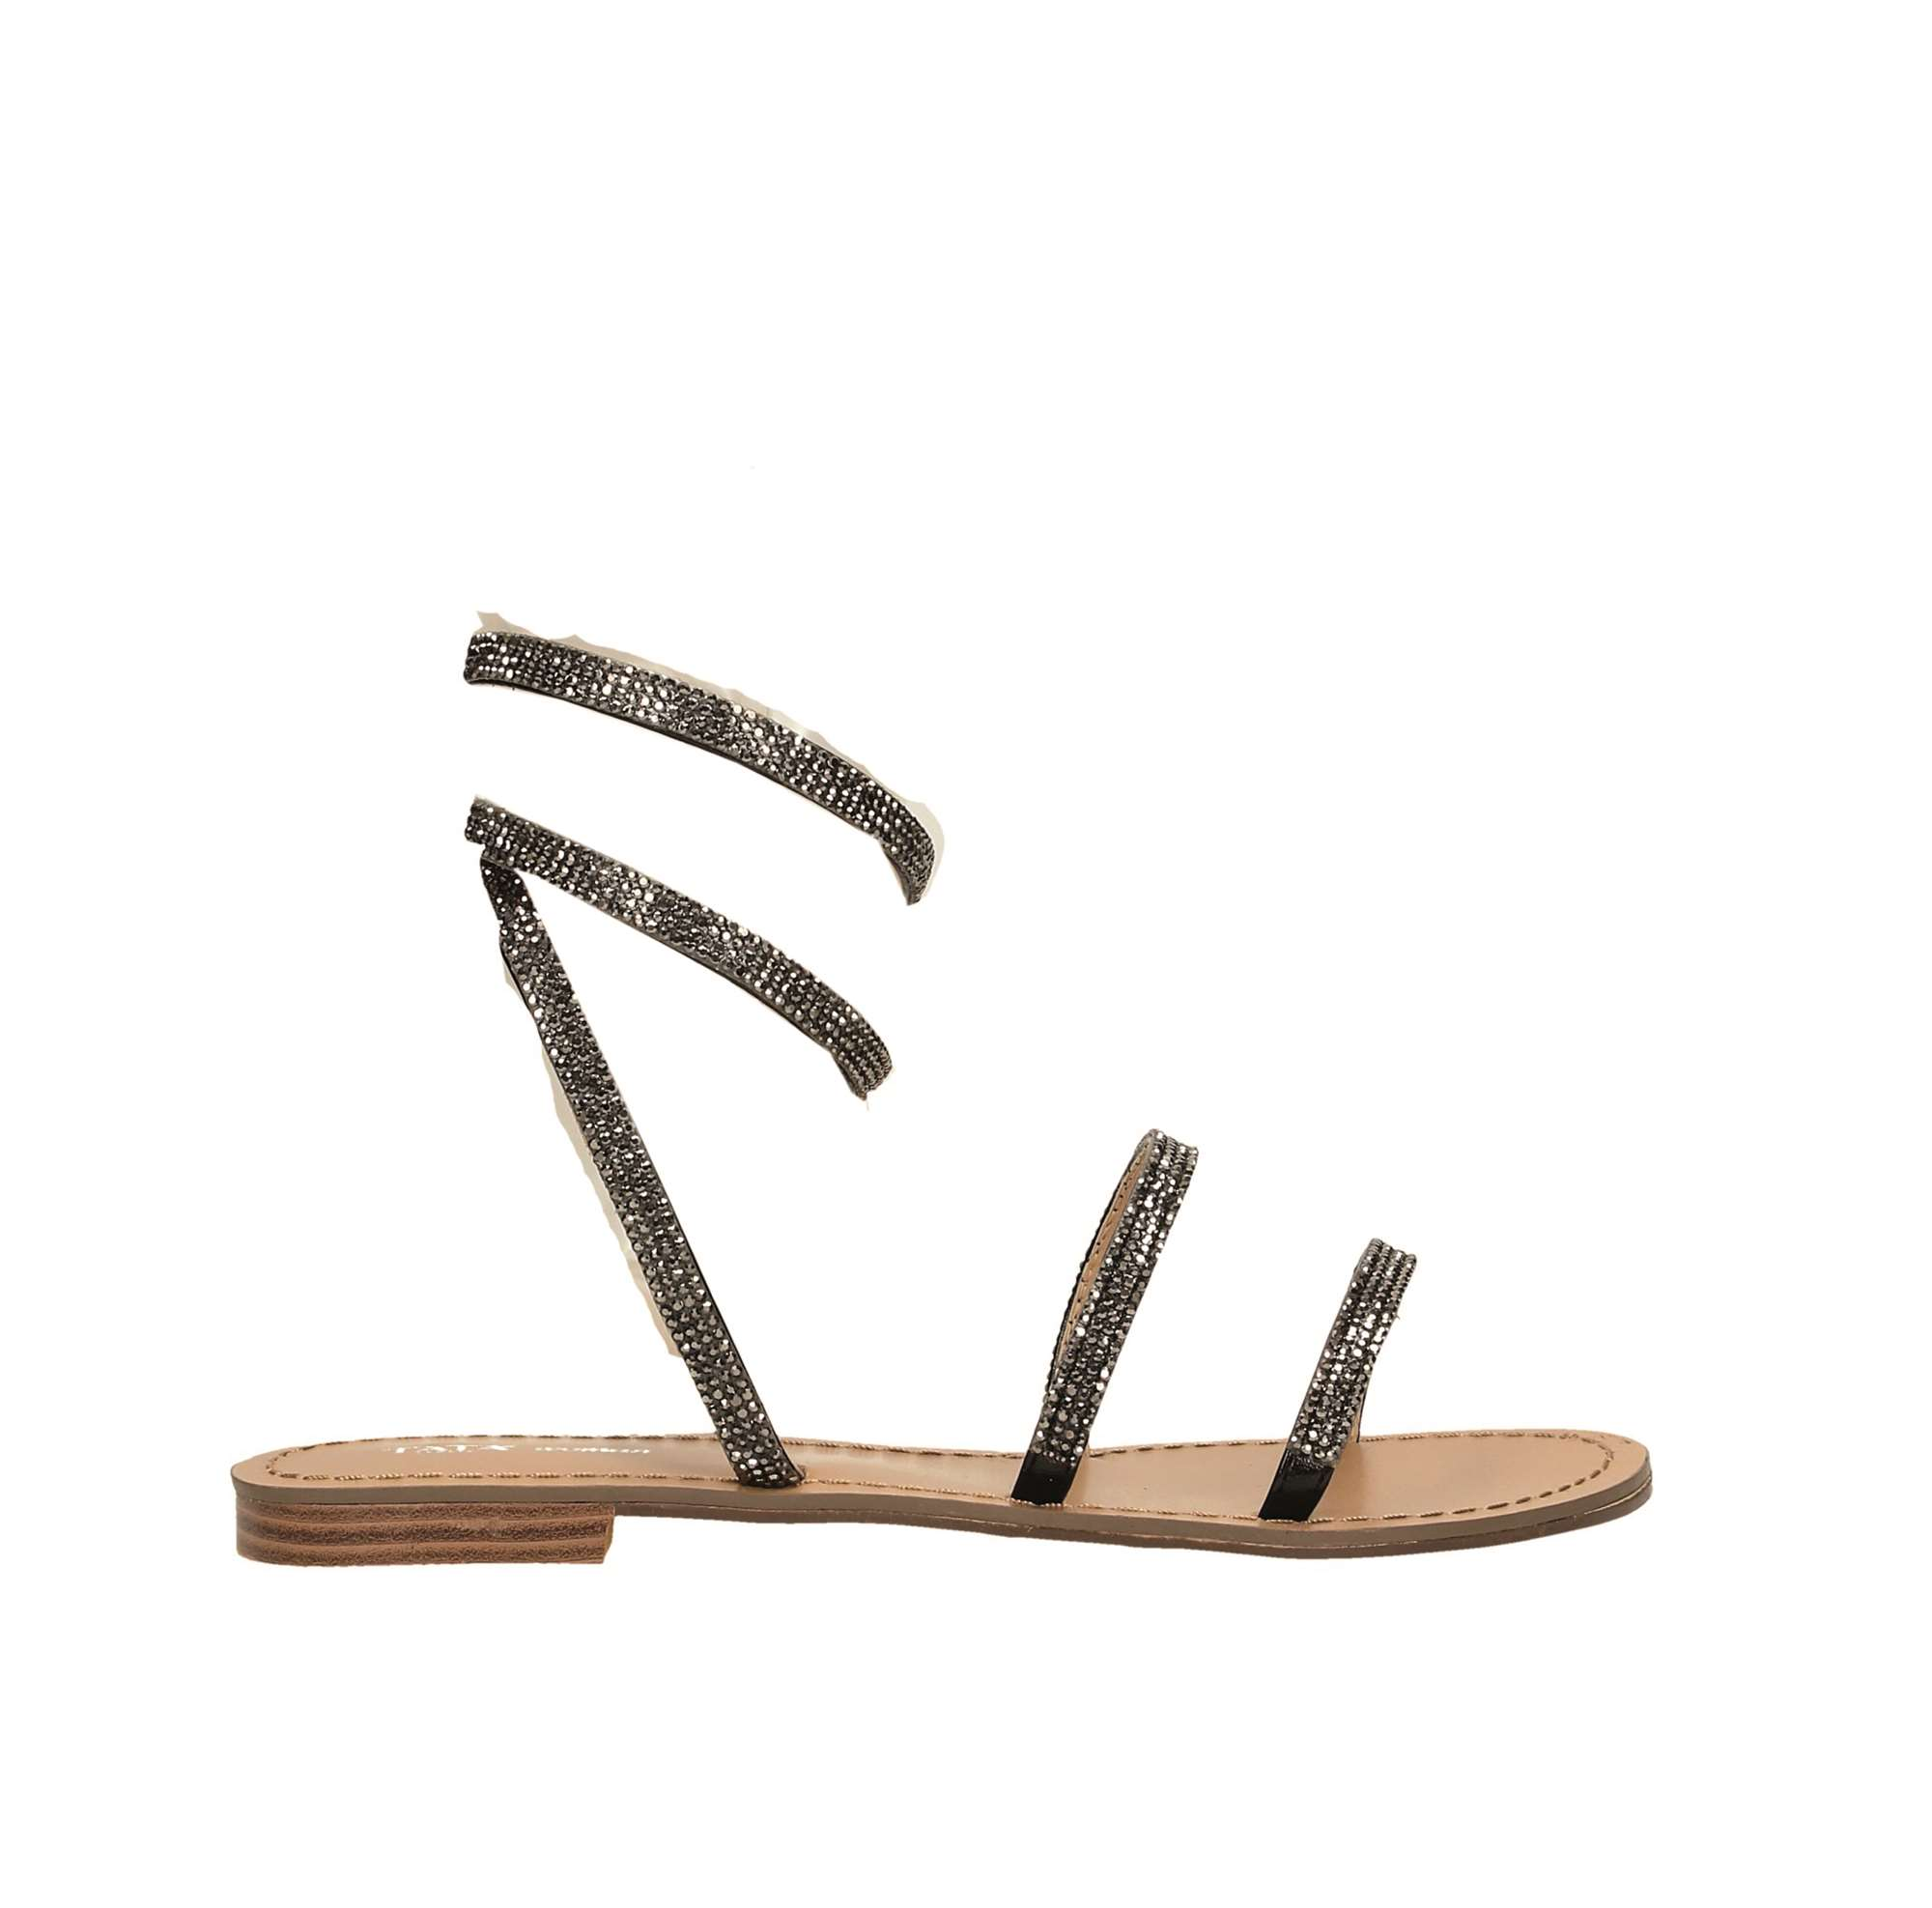 Tata Italia Shoes Woman Sandali 068-048-805